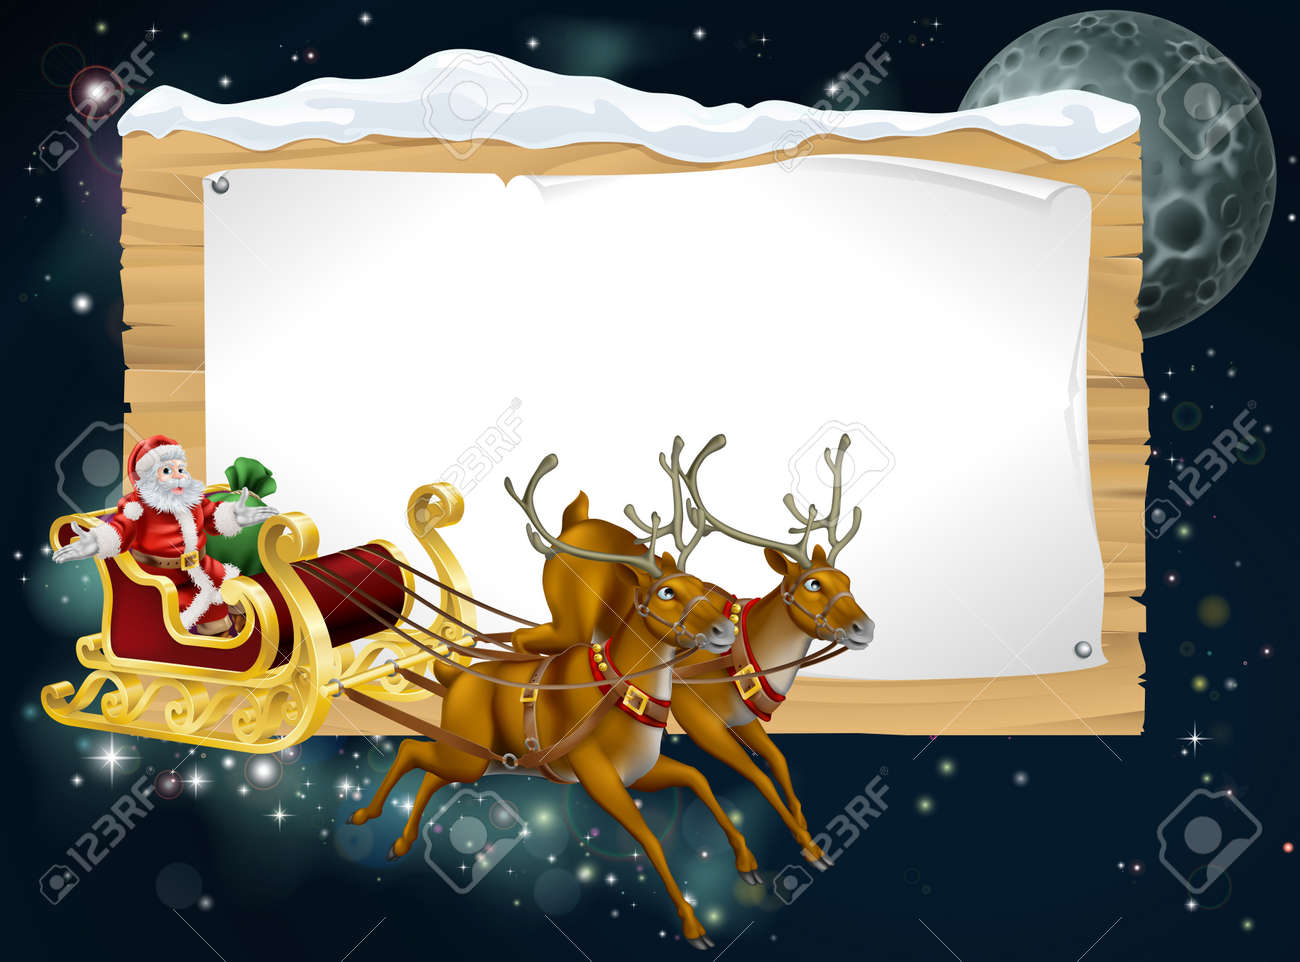 Santa Christmas sleigh background with Santa riding in his sleigh delivering Christmas gifts Stock Vector - 16333451